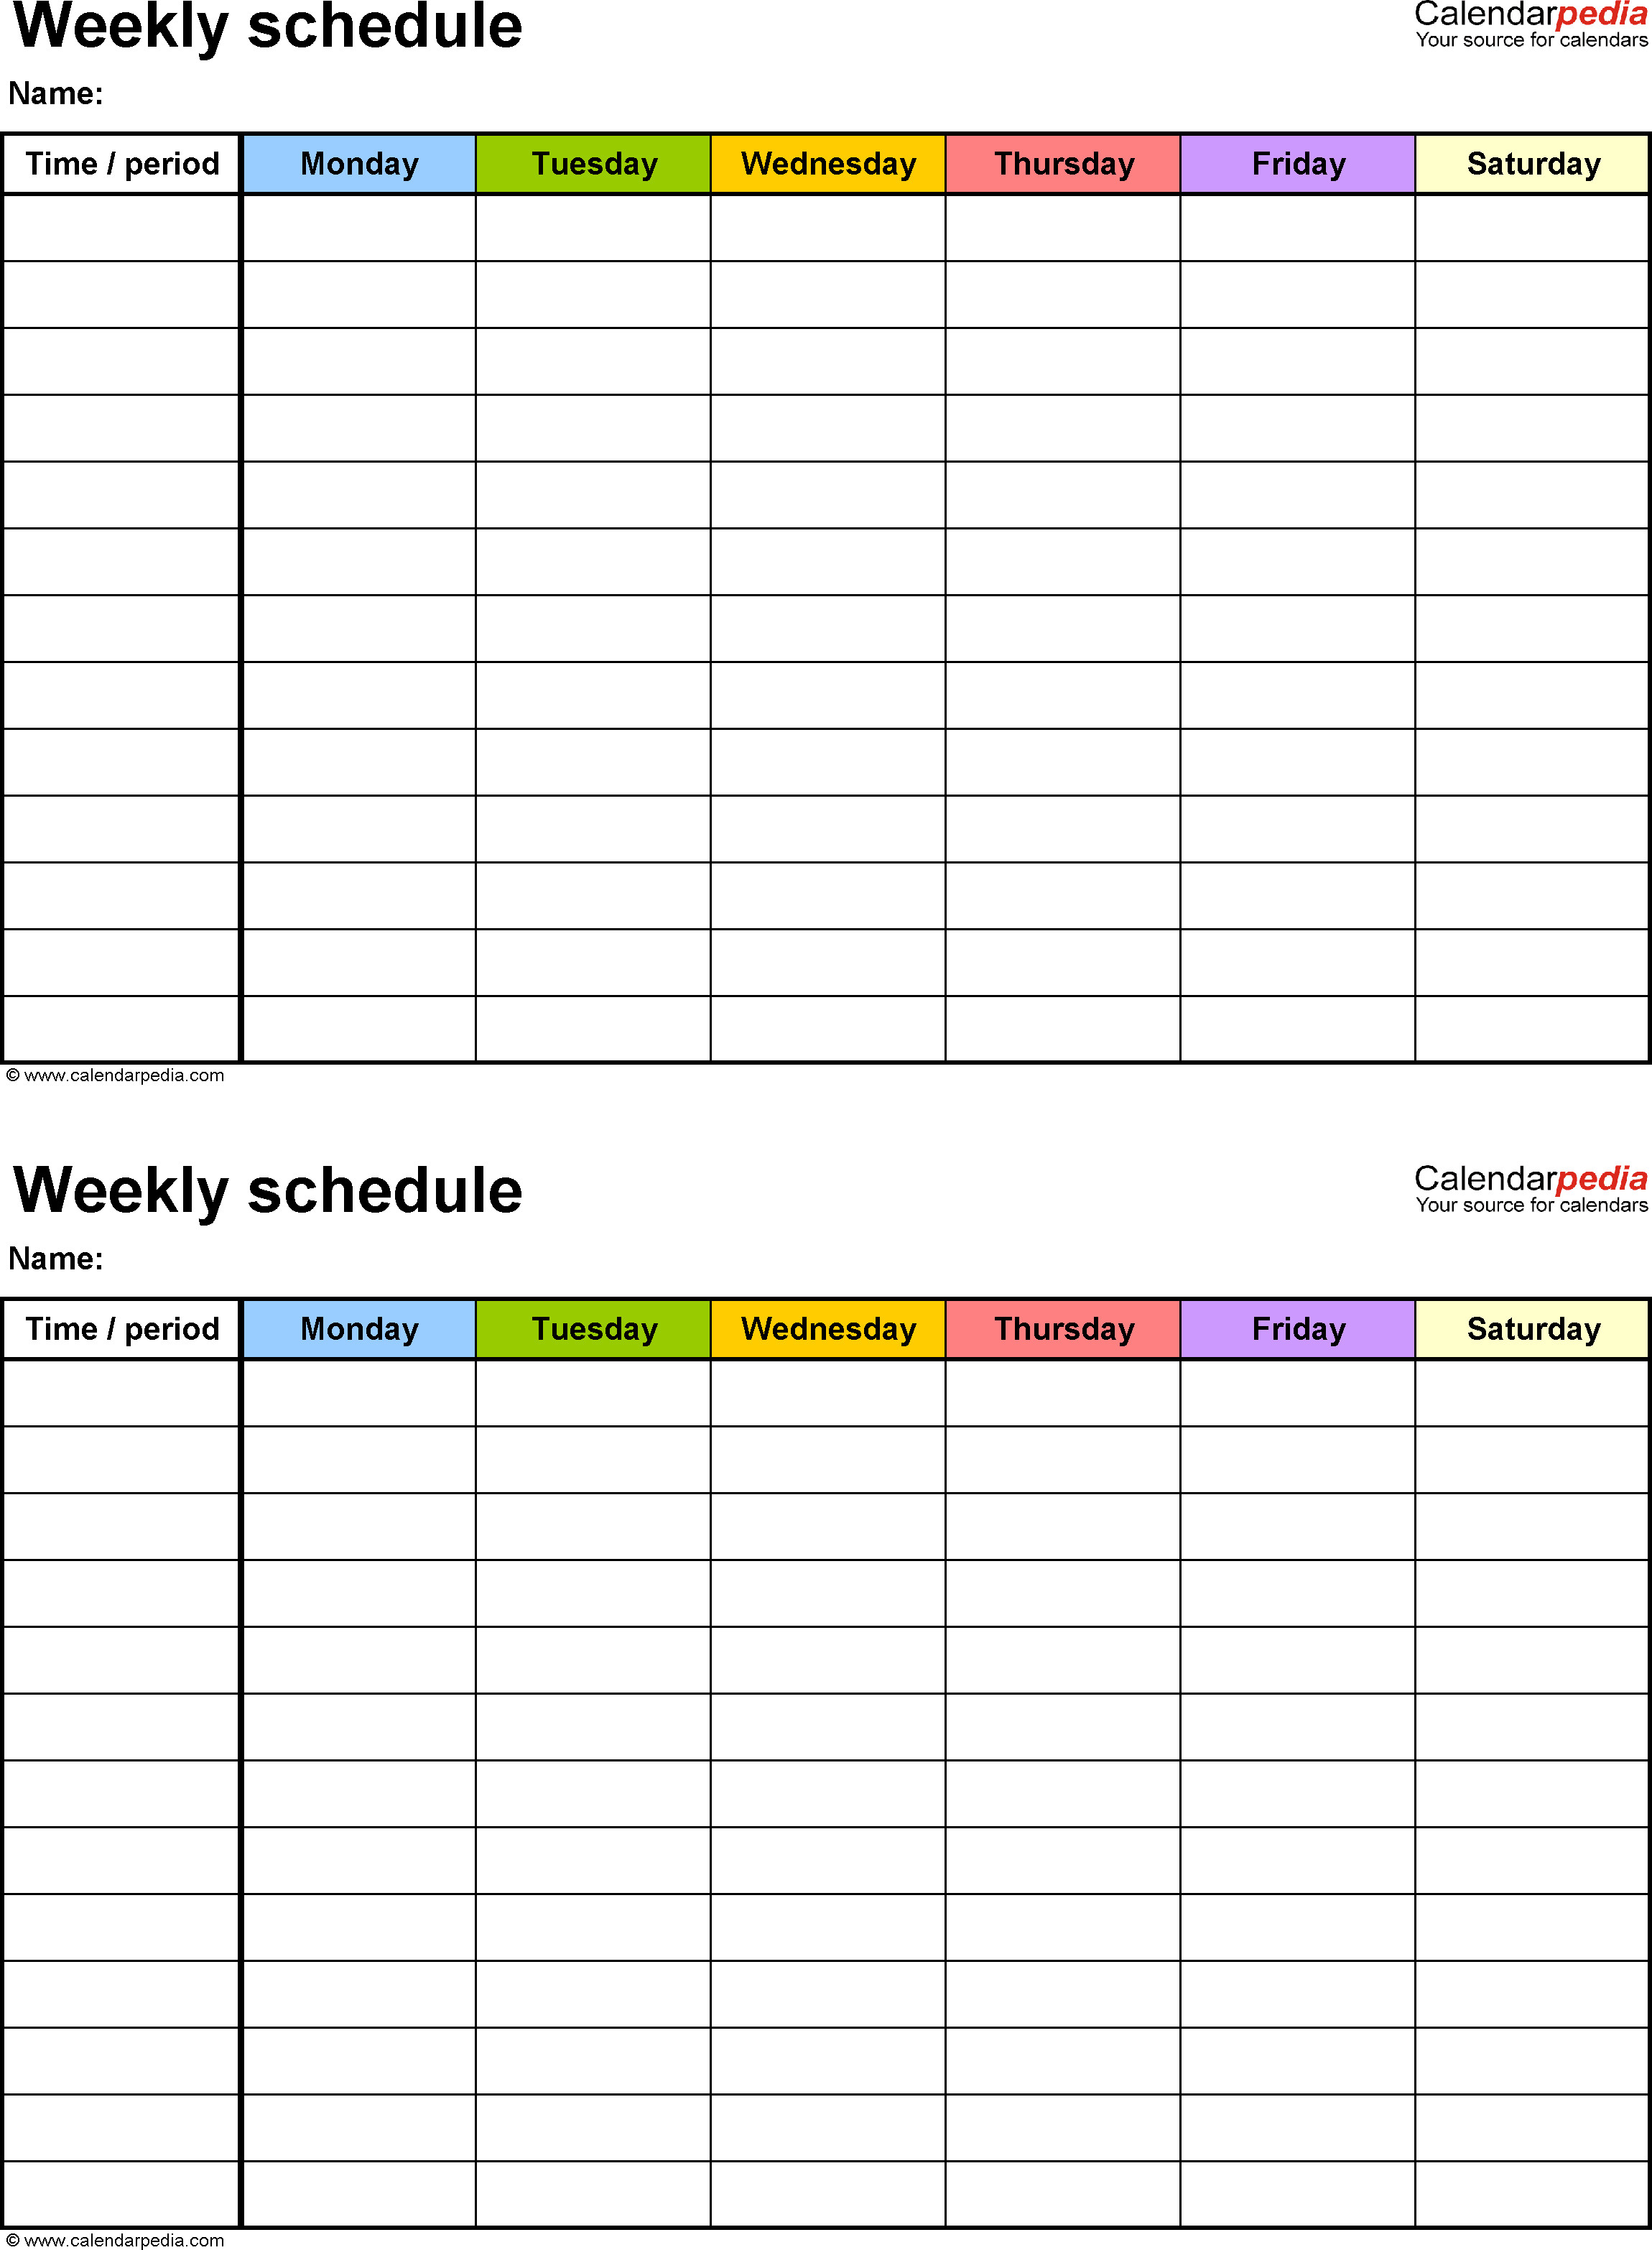 Weekly Time Schedule Template Weekly Schedule Template for Word Version 9 2 Schedules